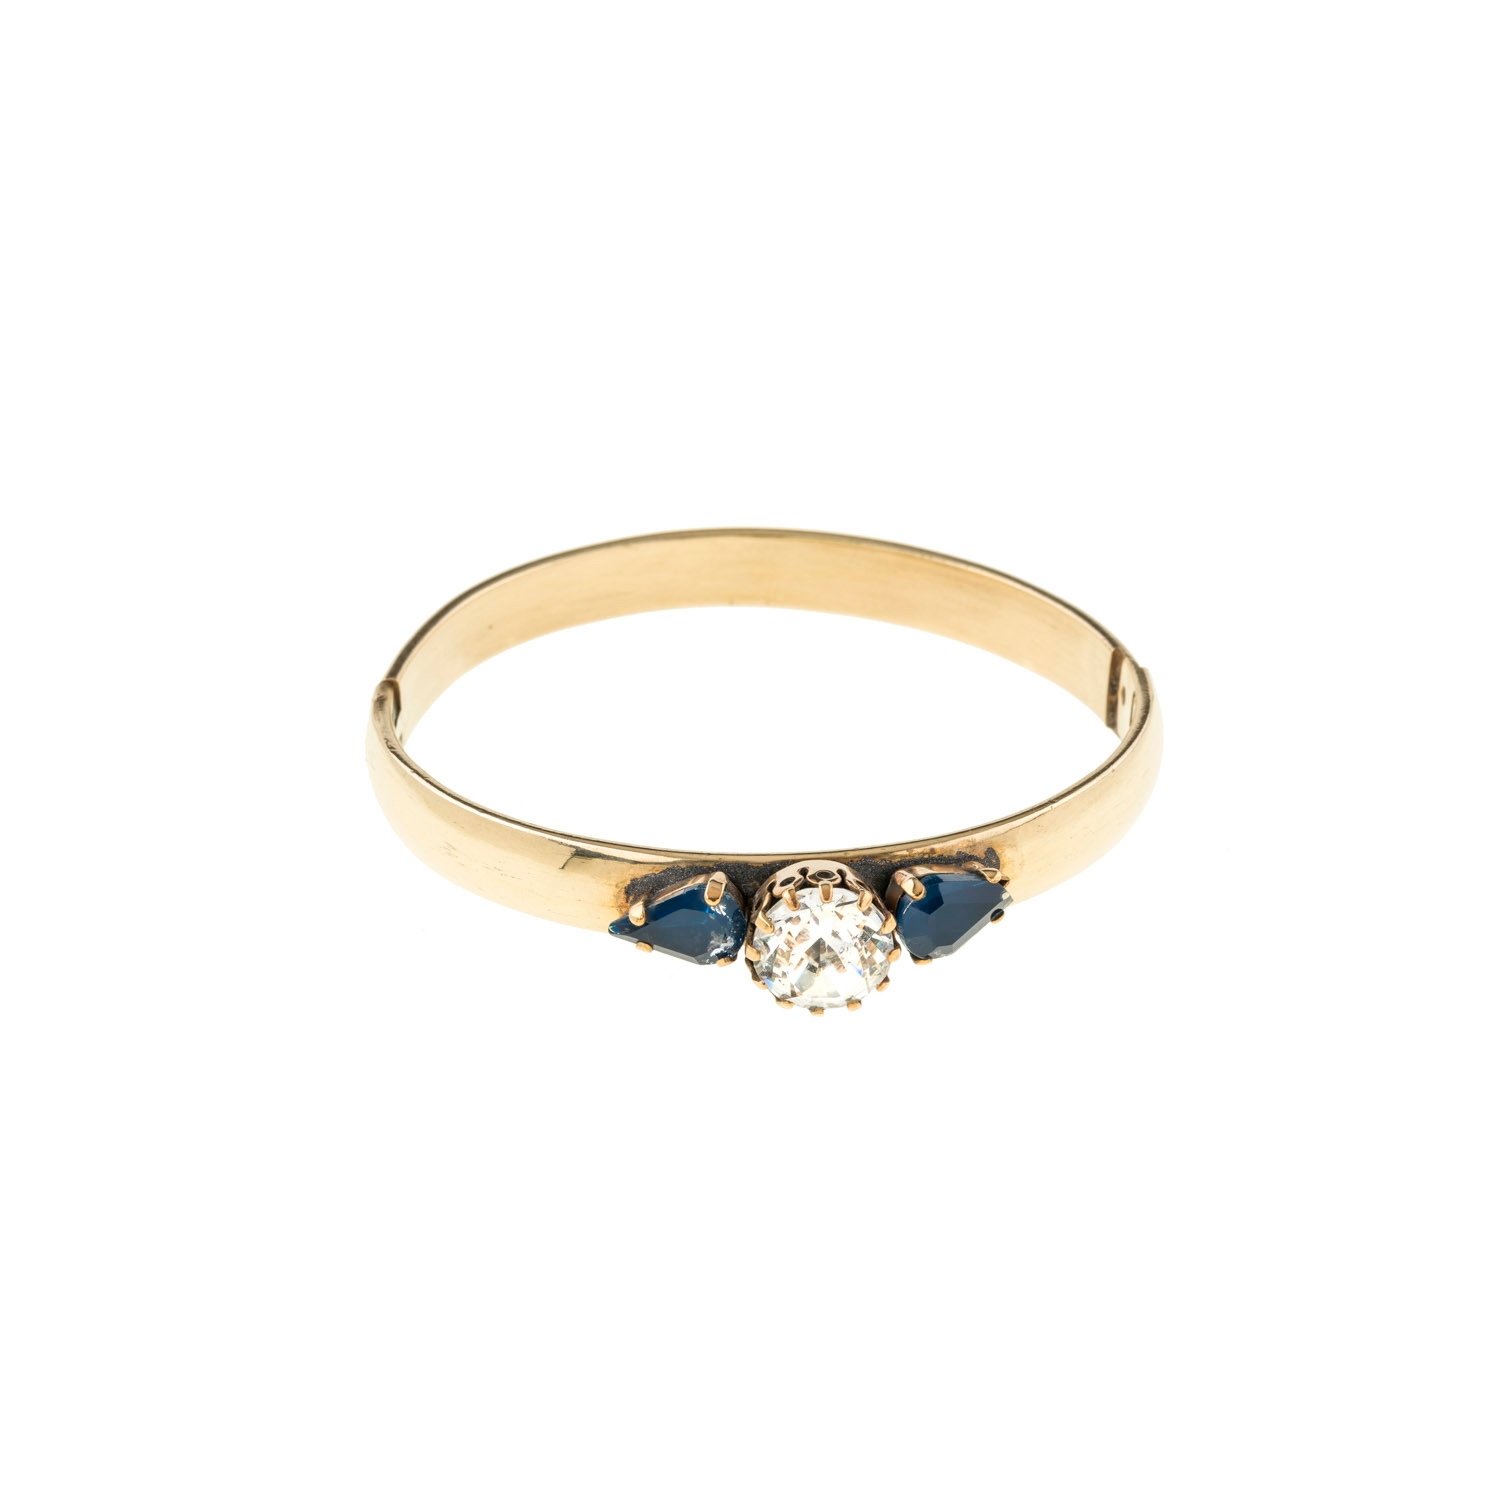 HALO & CO SOLITAIRE CRYSTAL BANGLE WITH DENIM BLUE TEAR DROPS